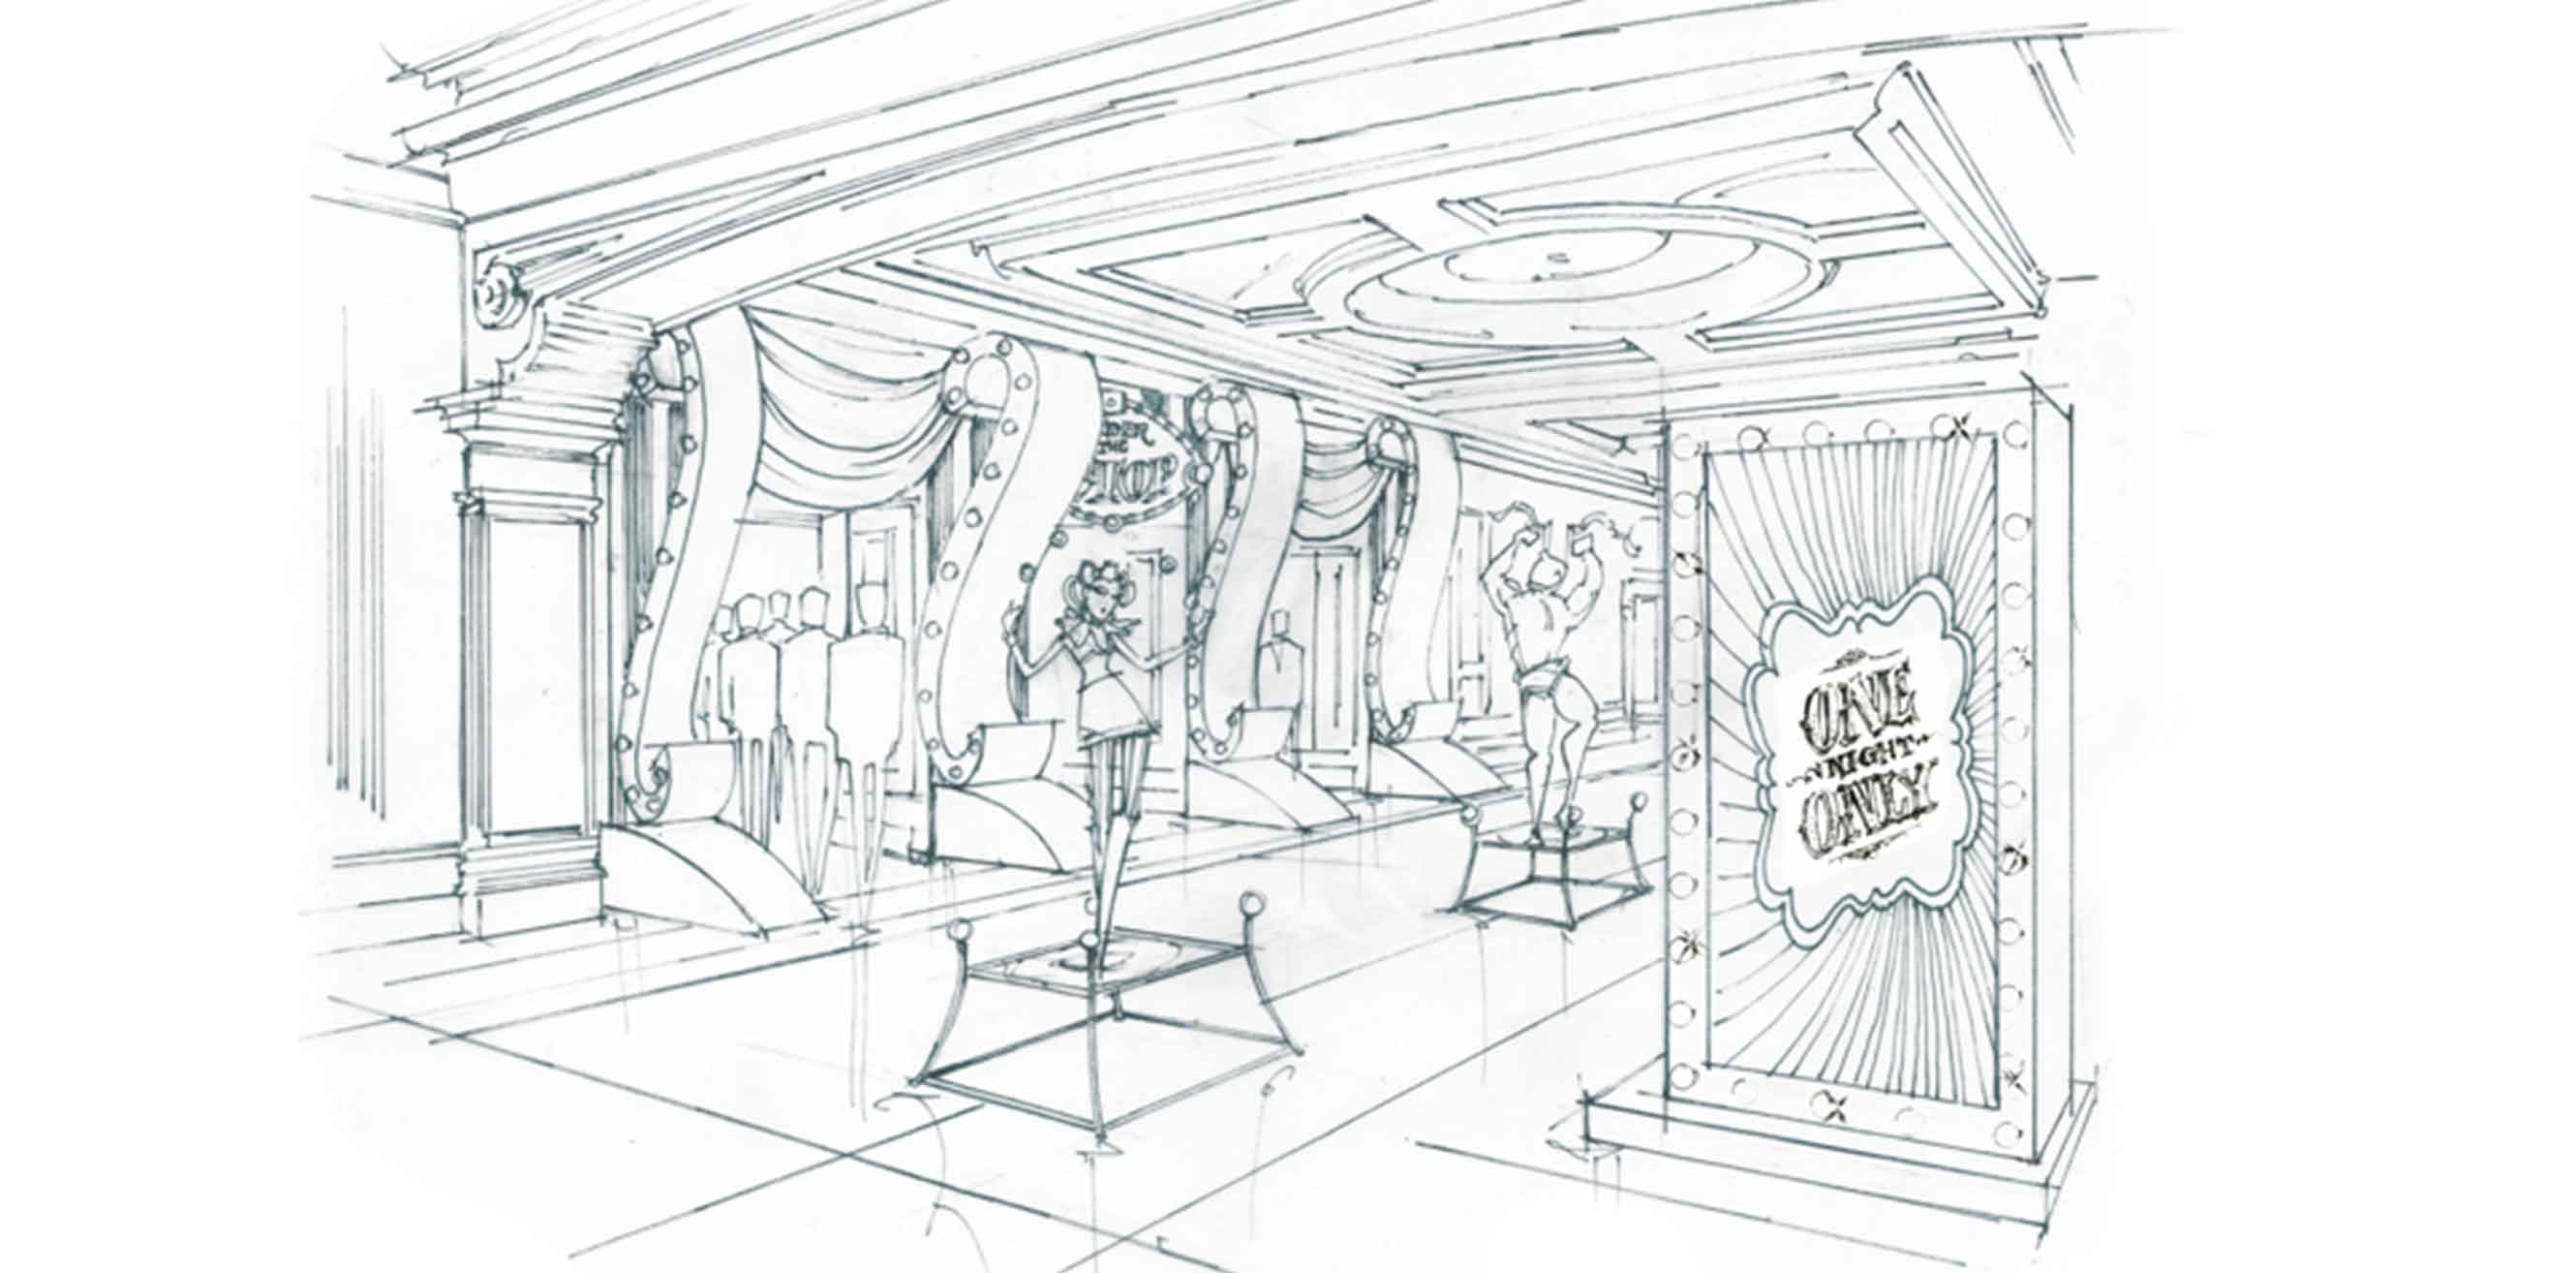 Artist's rendering of the big top themed venue entrance